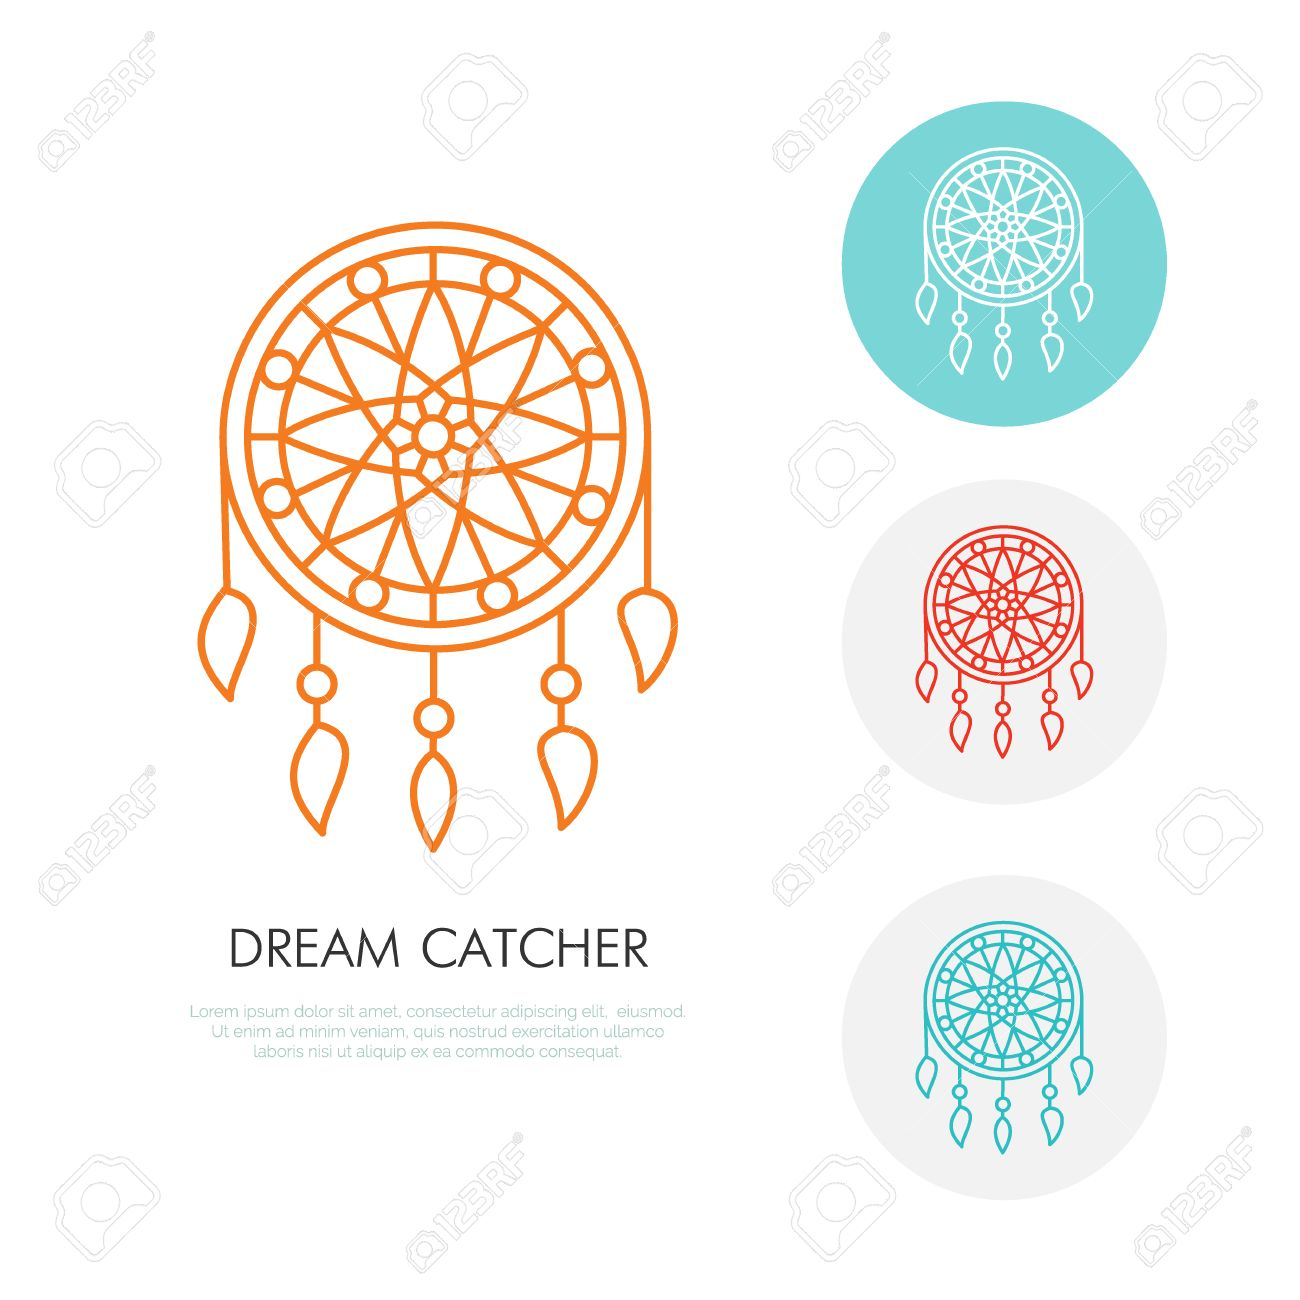 Dream catcher illustration modern line icon of dreamcatcher dream catcher illustration modern line icon of dreamcatcher indian tribal linear logo outline buycottarizona